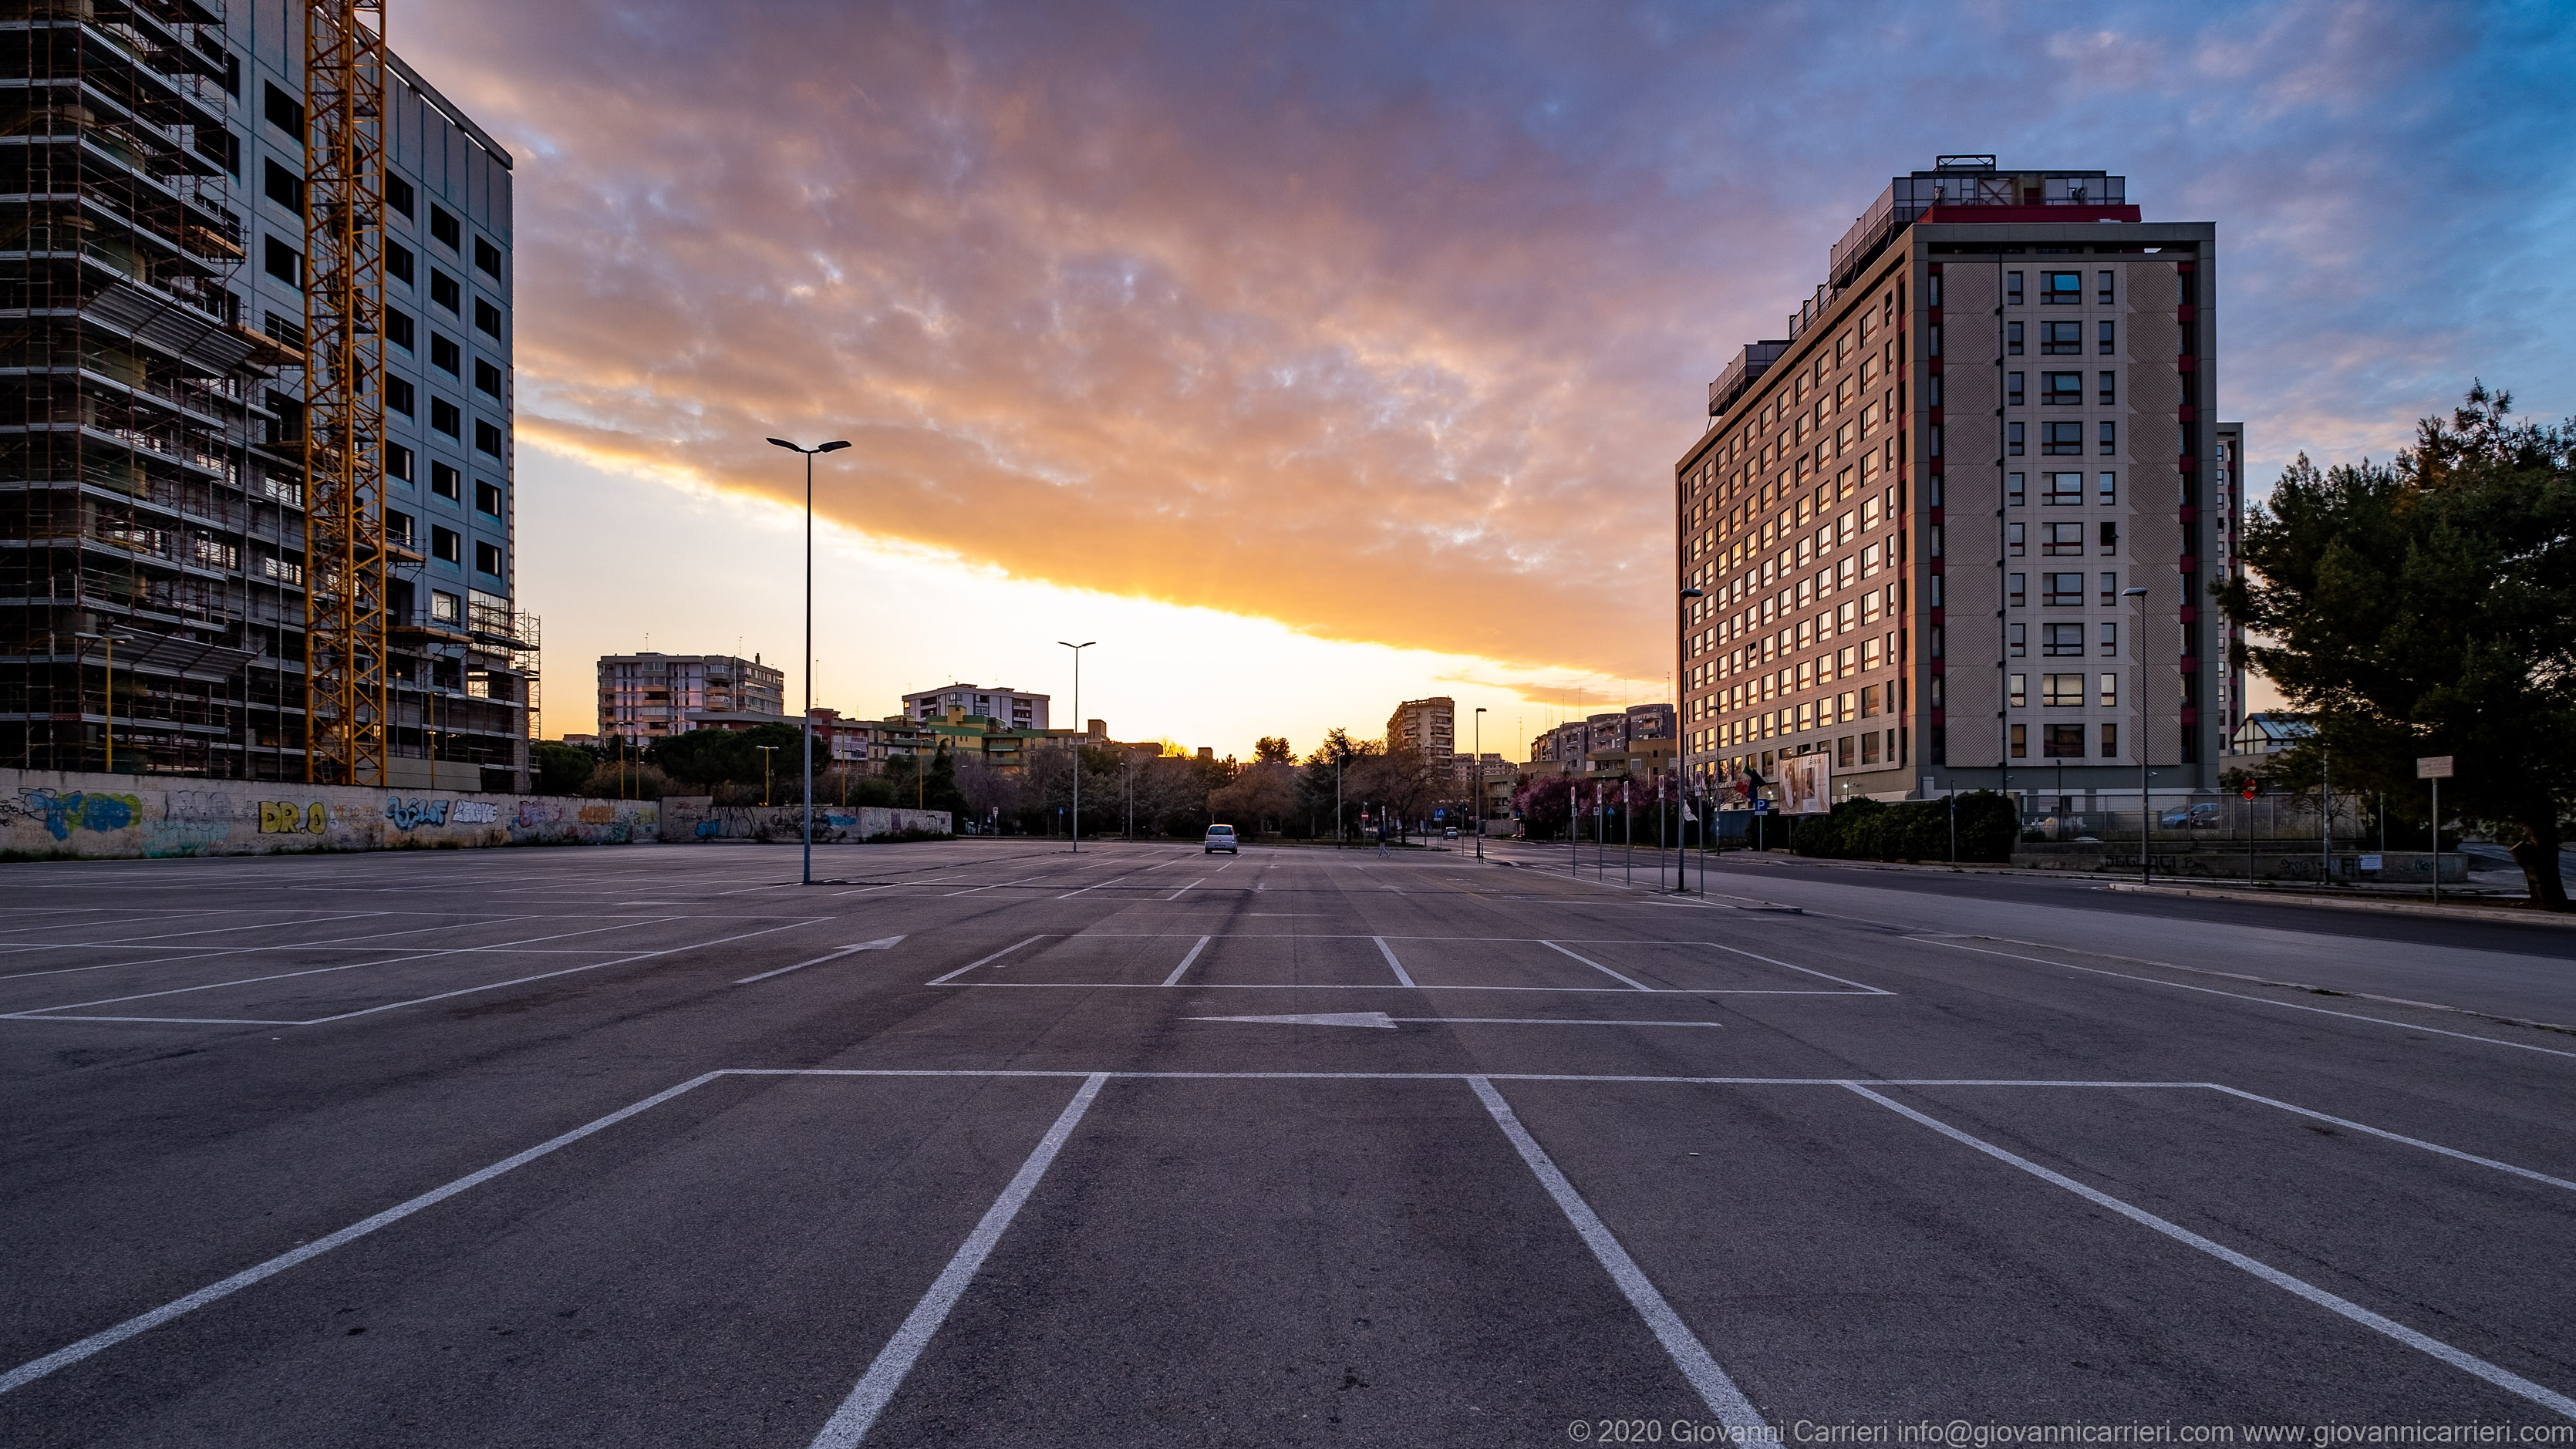 Saverio Diogardi Avenue, Bari The Criminal Court Building and the parking lot in front of it.